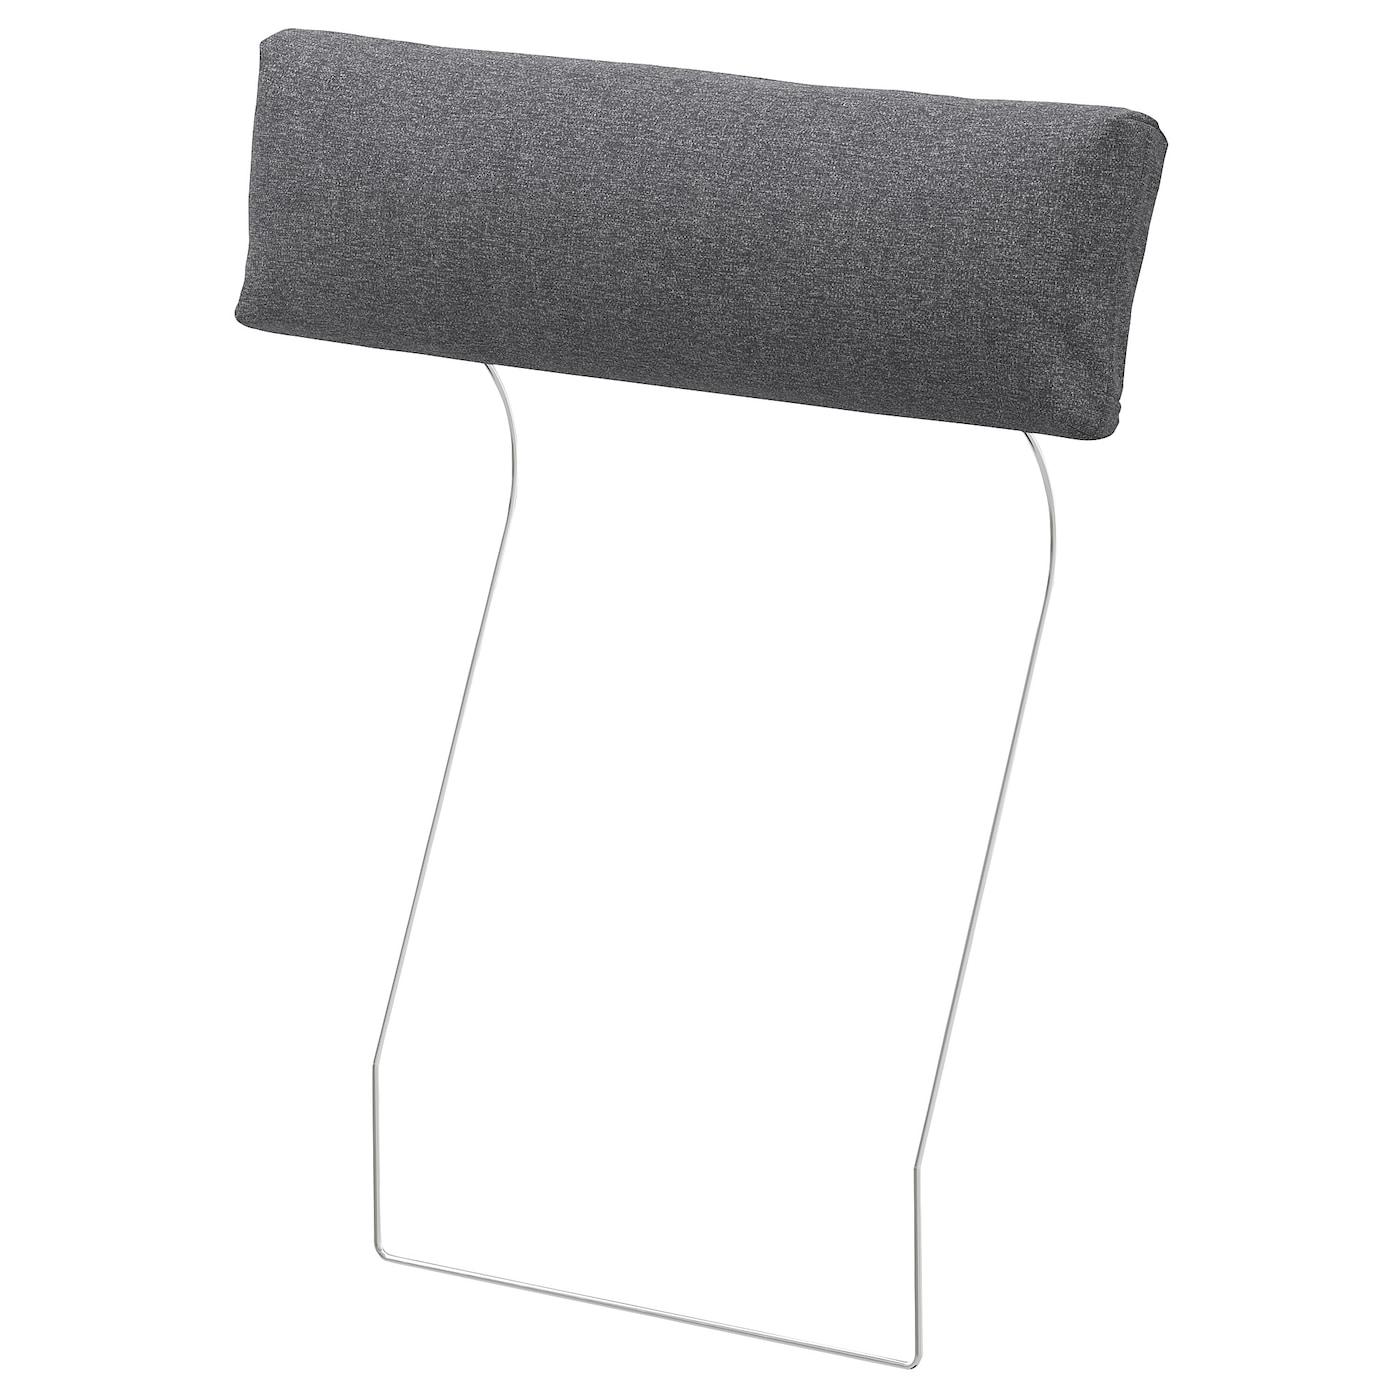 IKEA VIMLE headrest The cover is easy to keep clean since it is removable and machine washable.